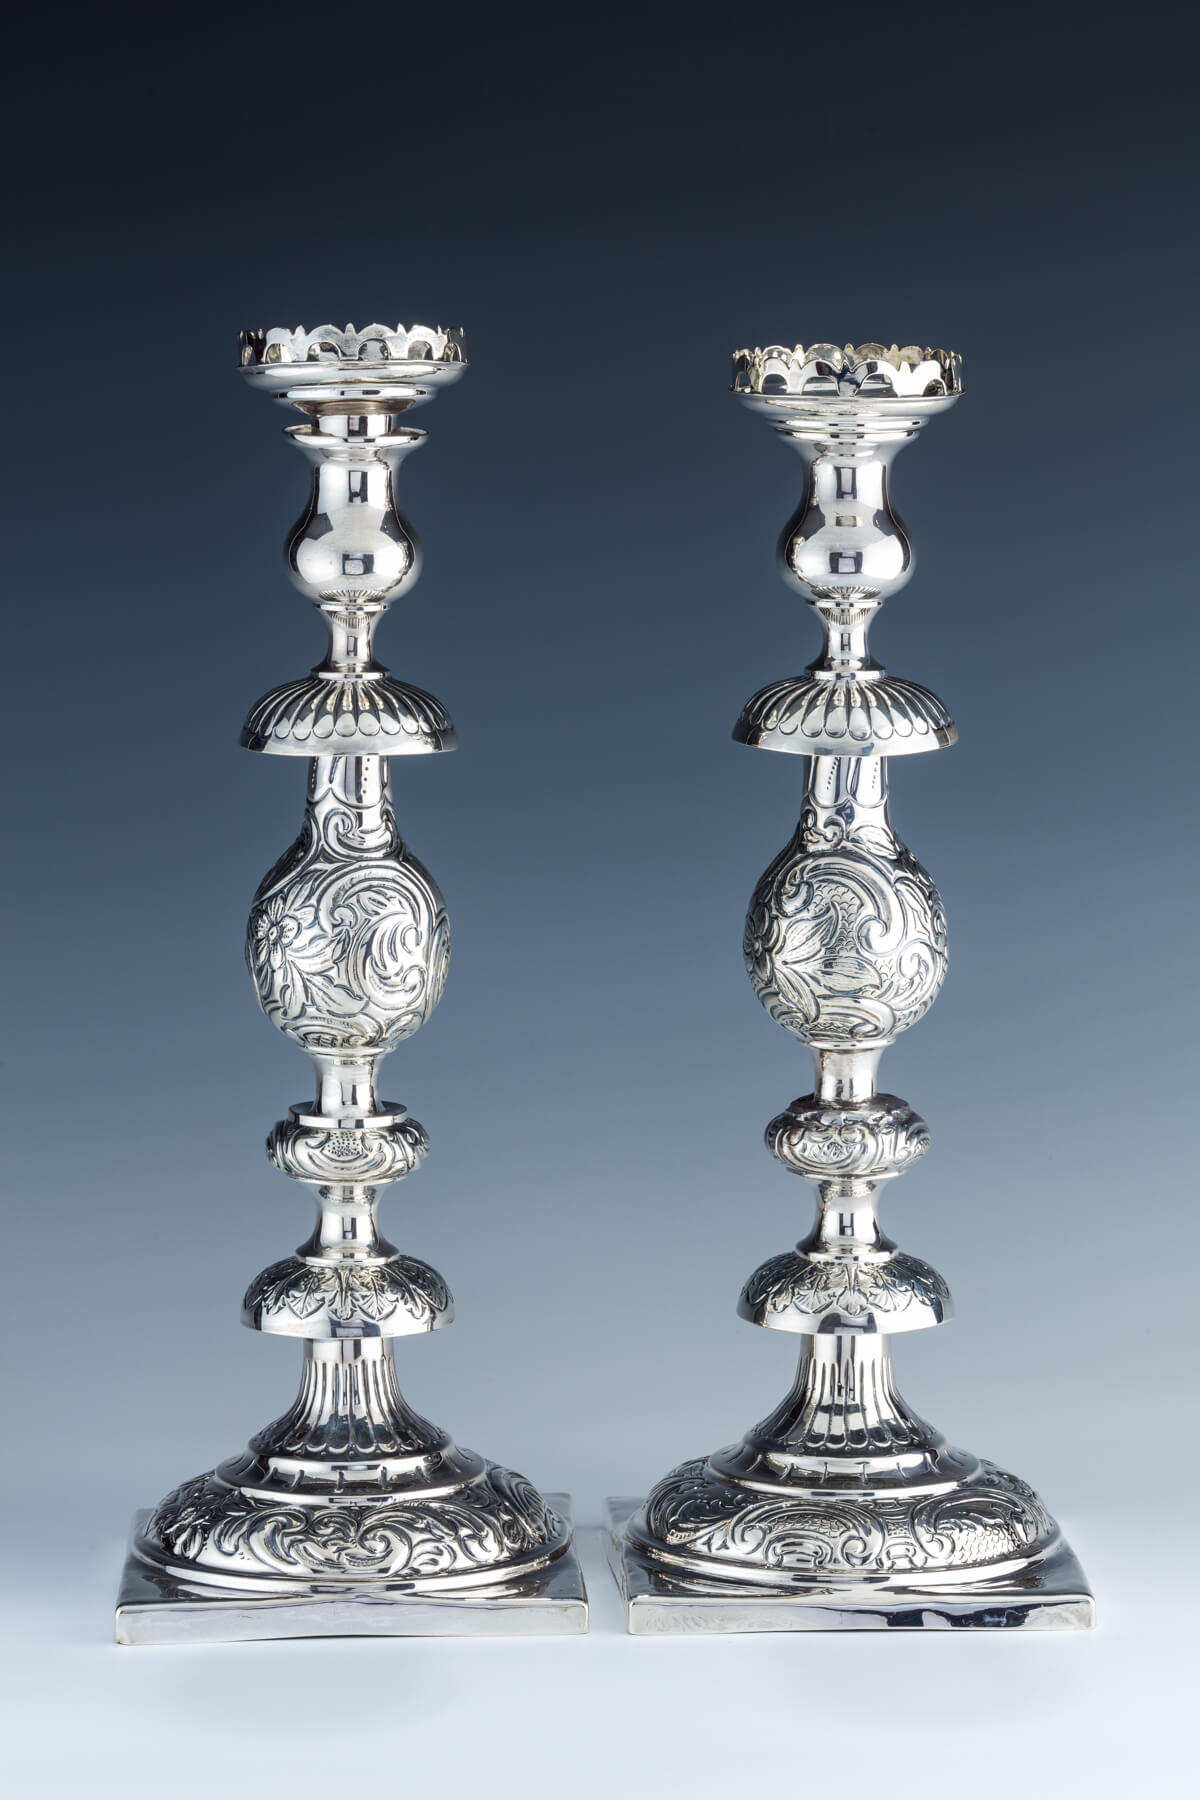 2. A Pair Of Sterling Silver Candlesticks By Alfred Fuller